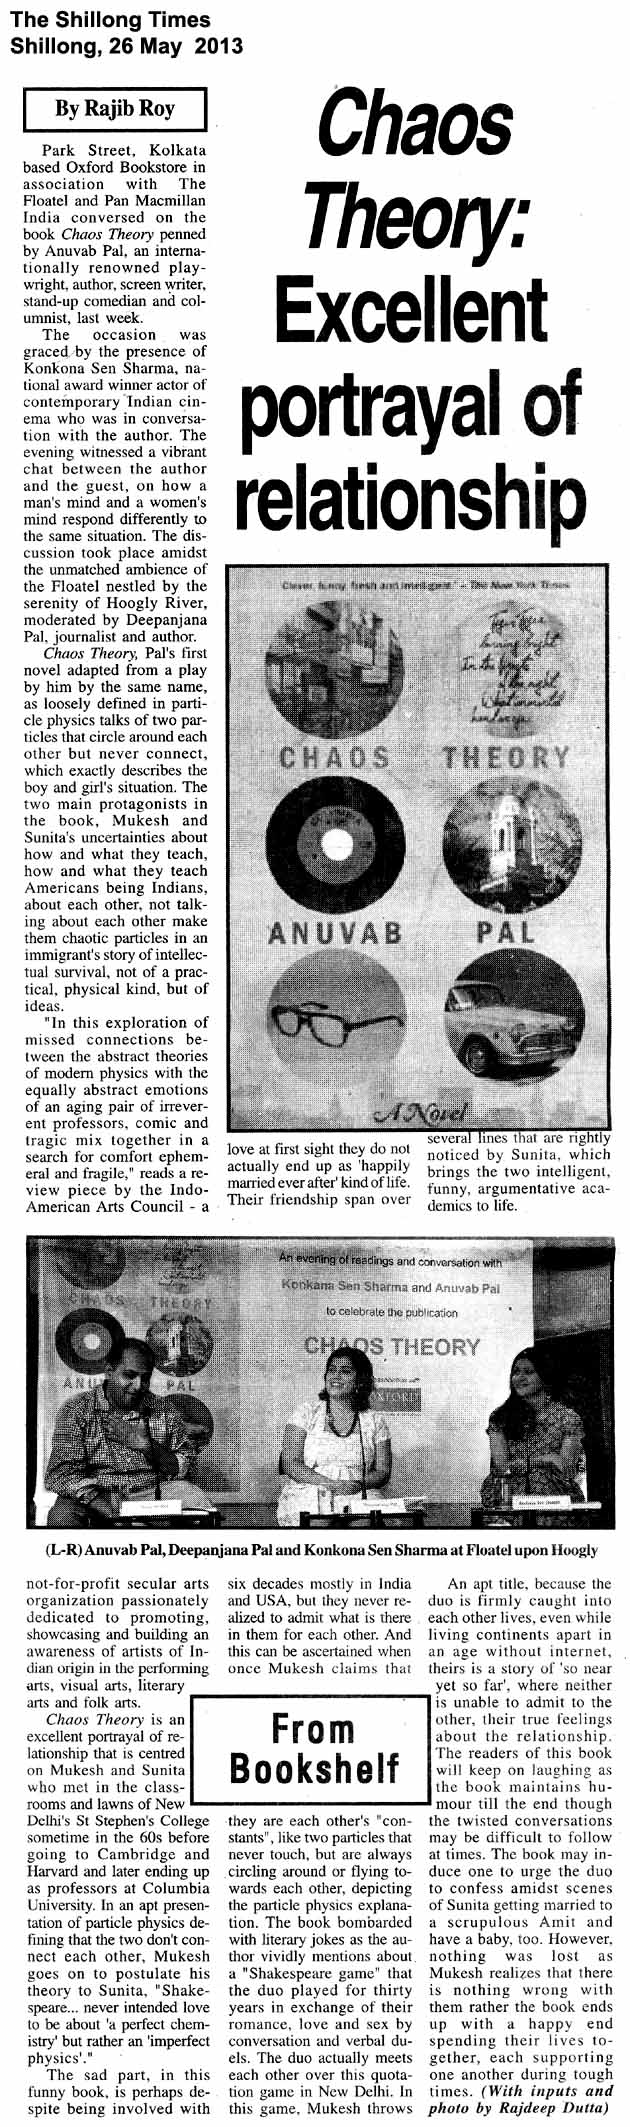 Shillong Times - Chaos Theory review